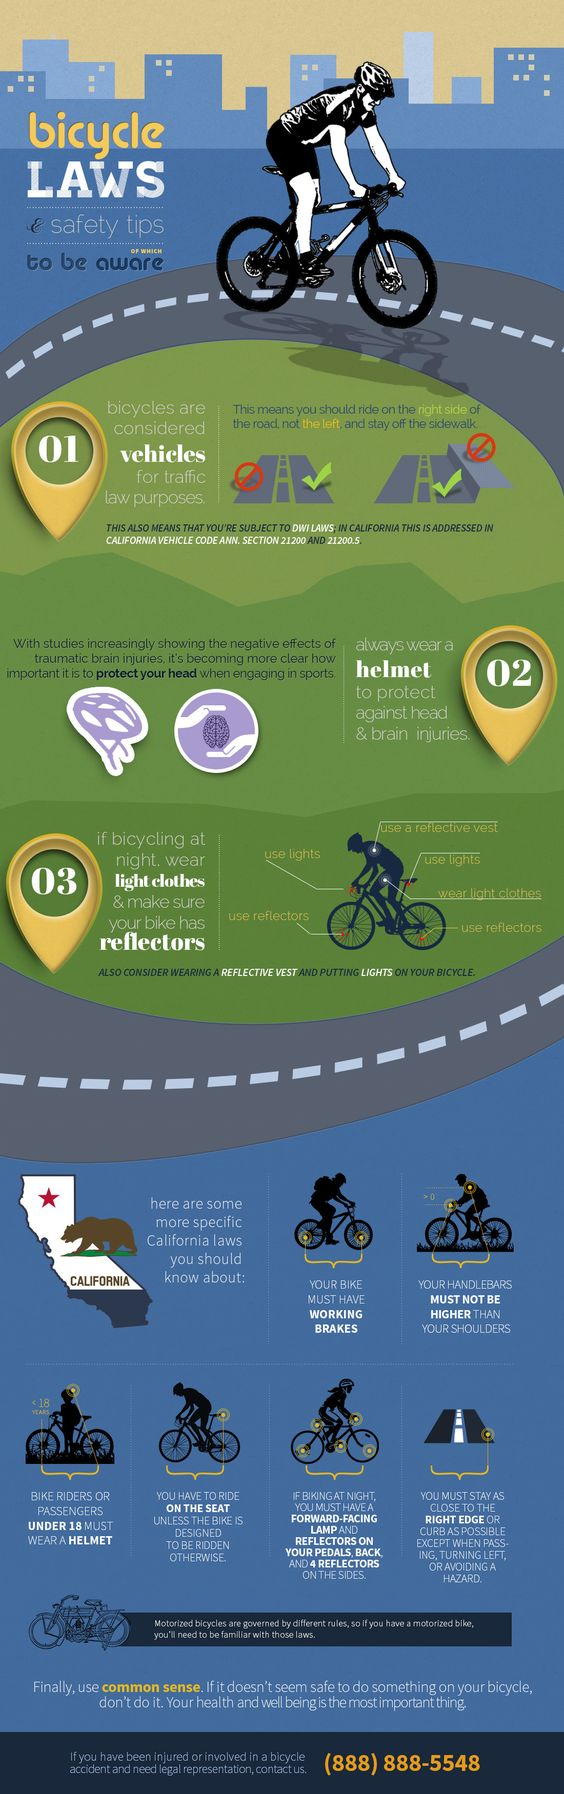 Bicycle laws and Safety #infographic #Bicycle #Laws